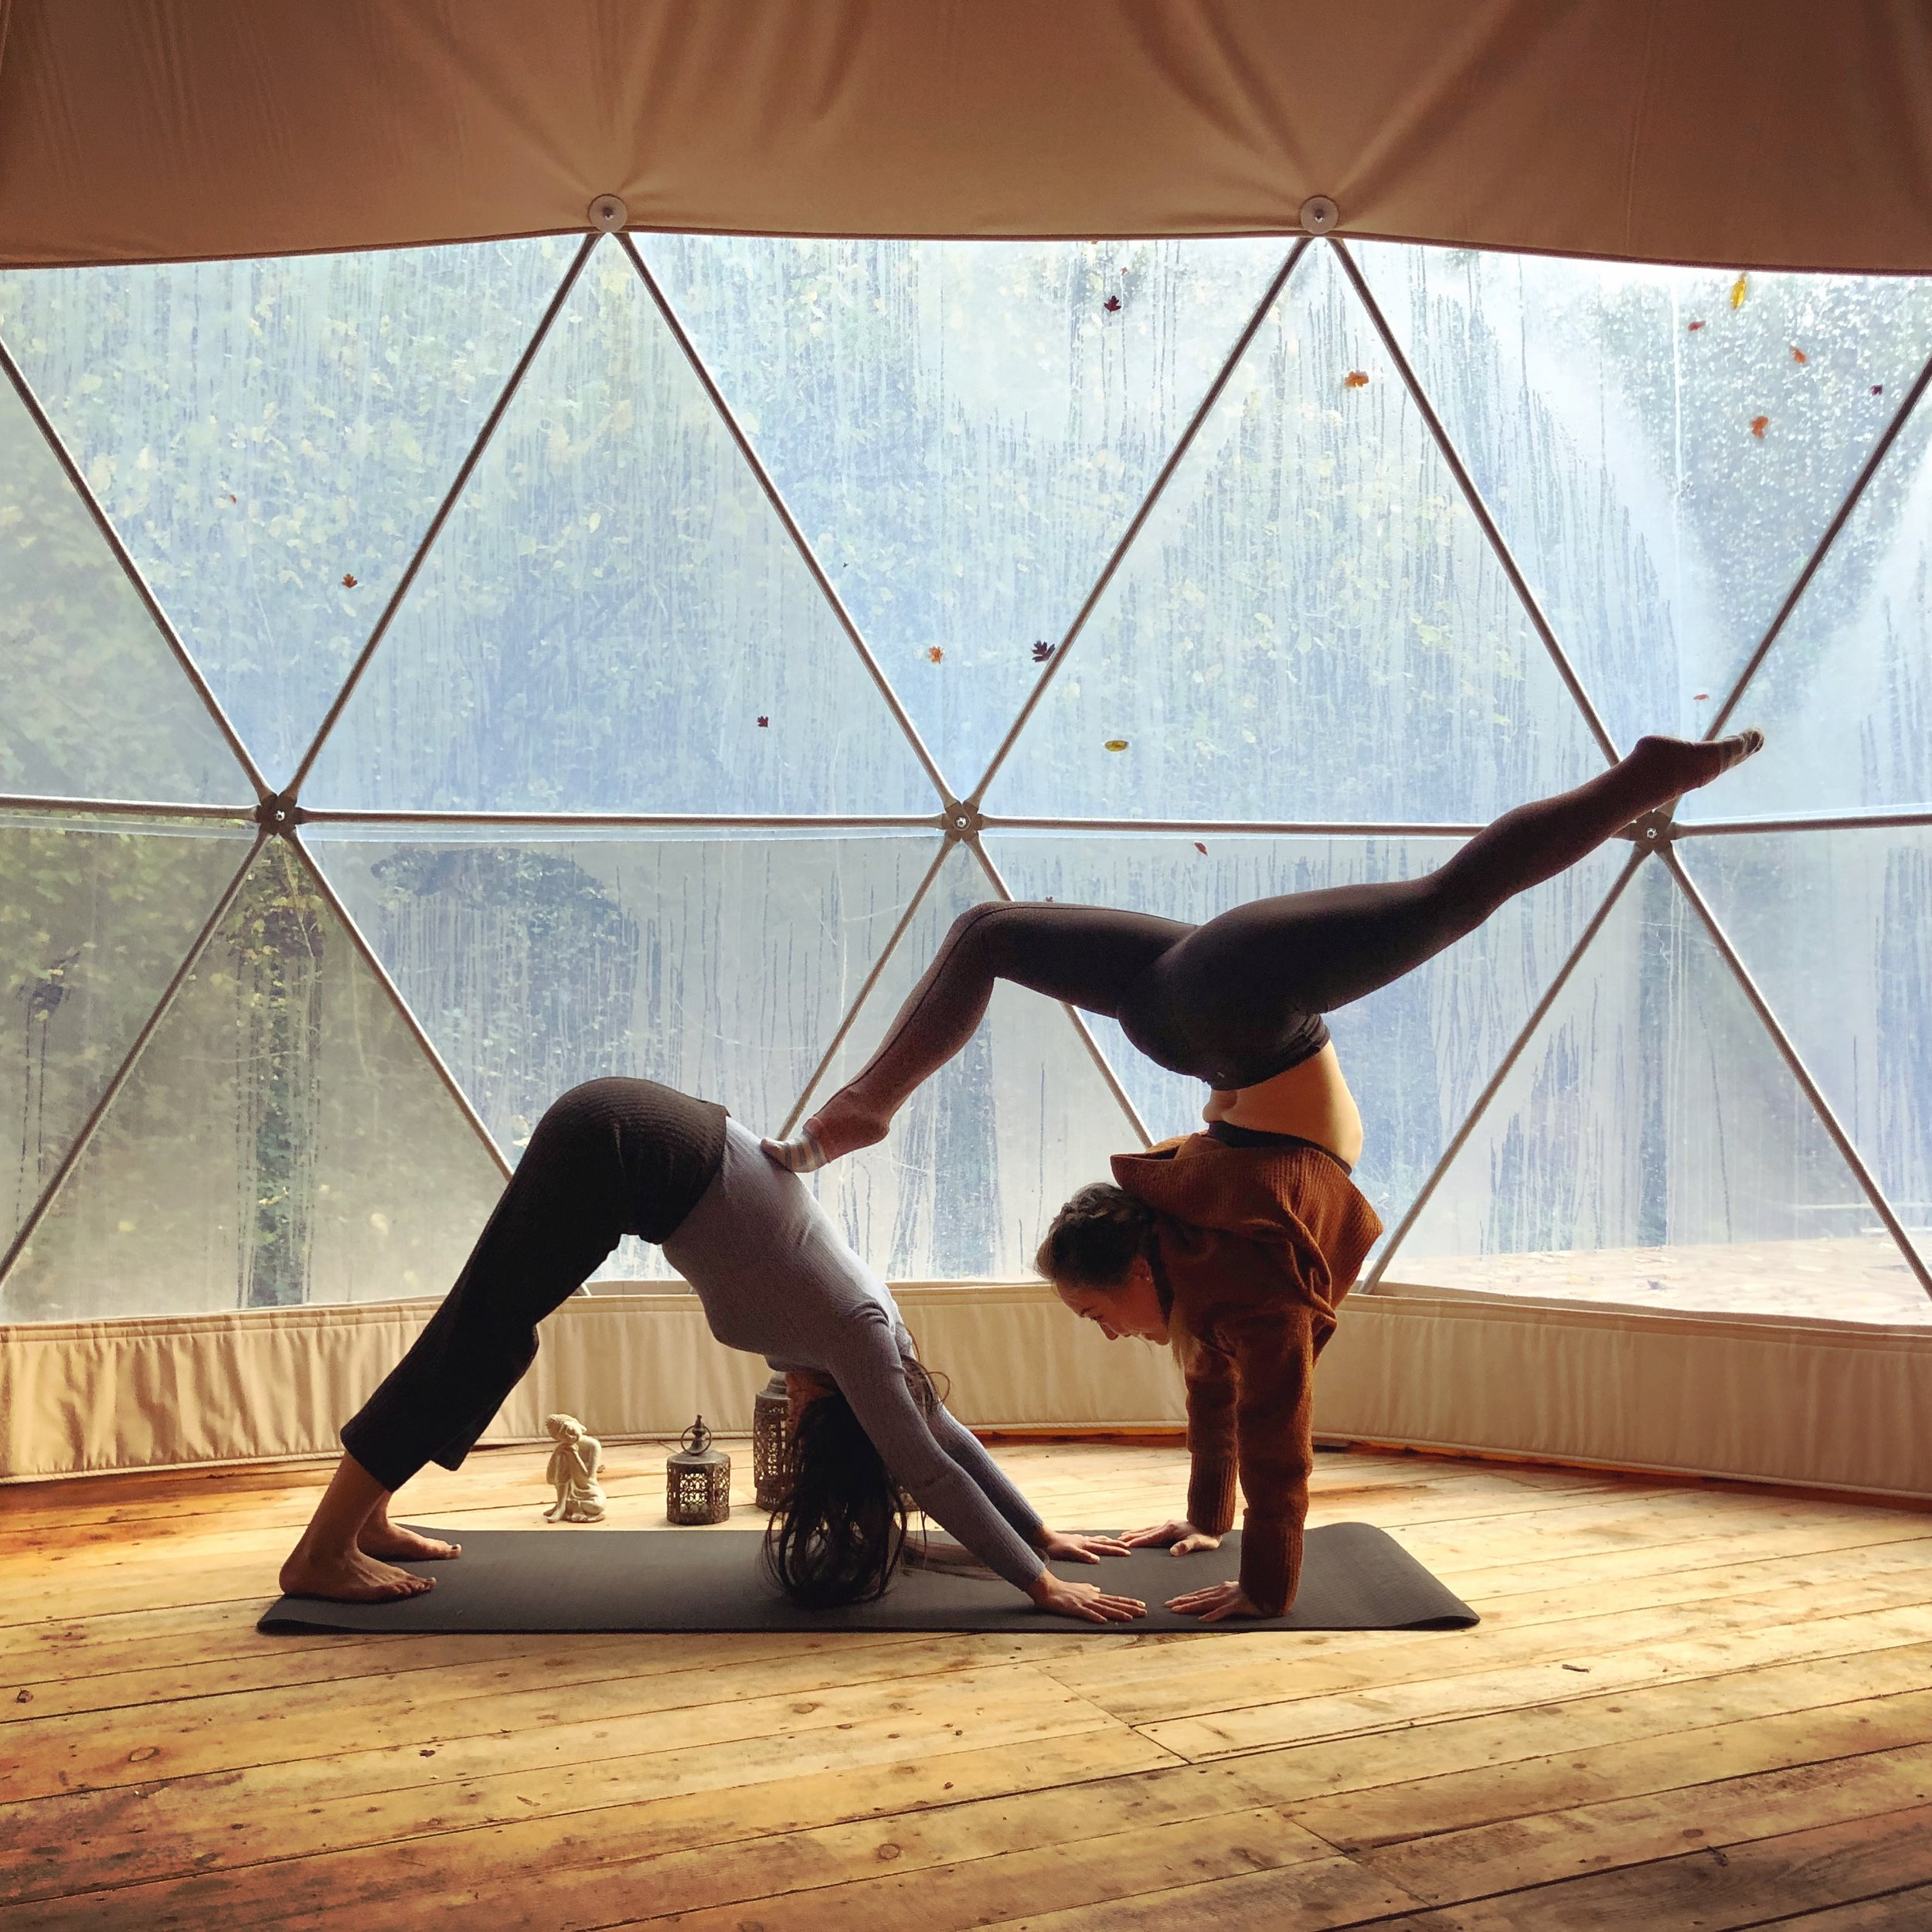 26.10.18 - Busting out some acroyoga poses with our gorgeous yogi Wen on dome opening day!